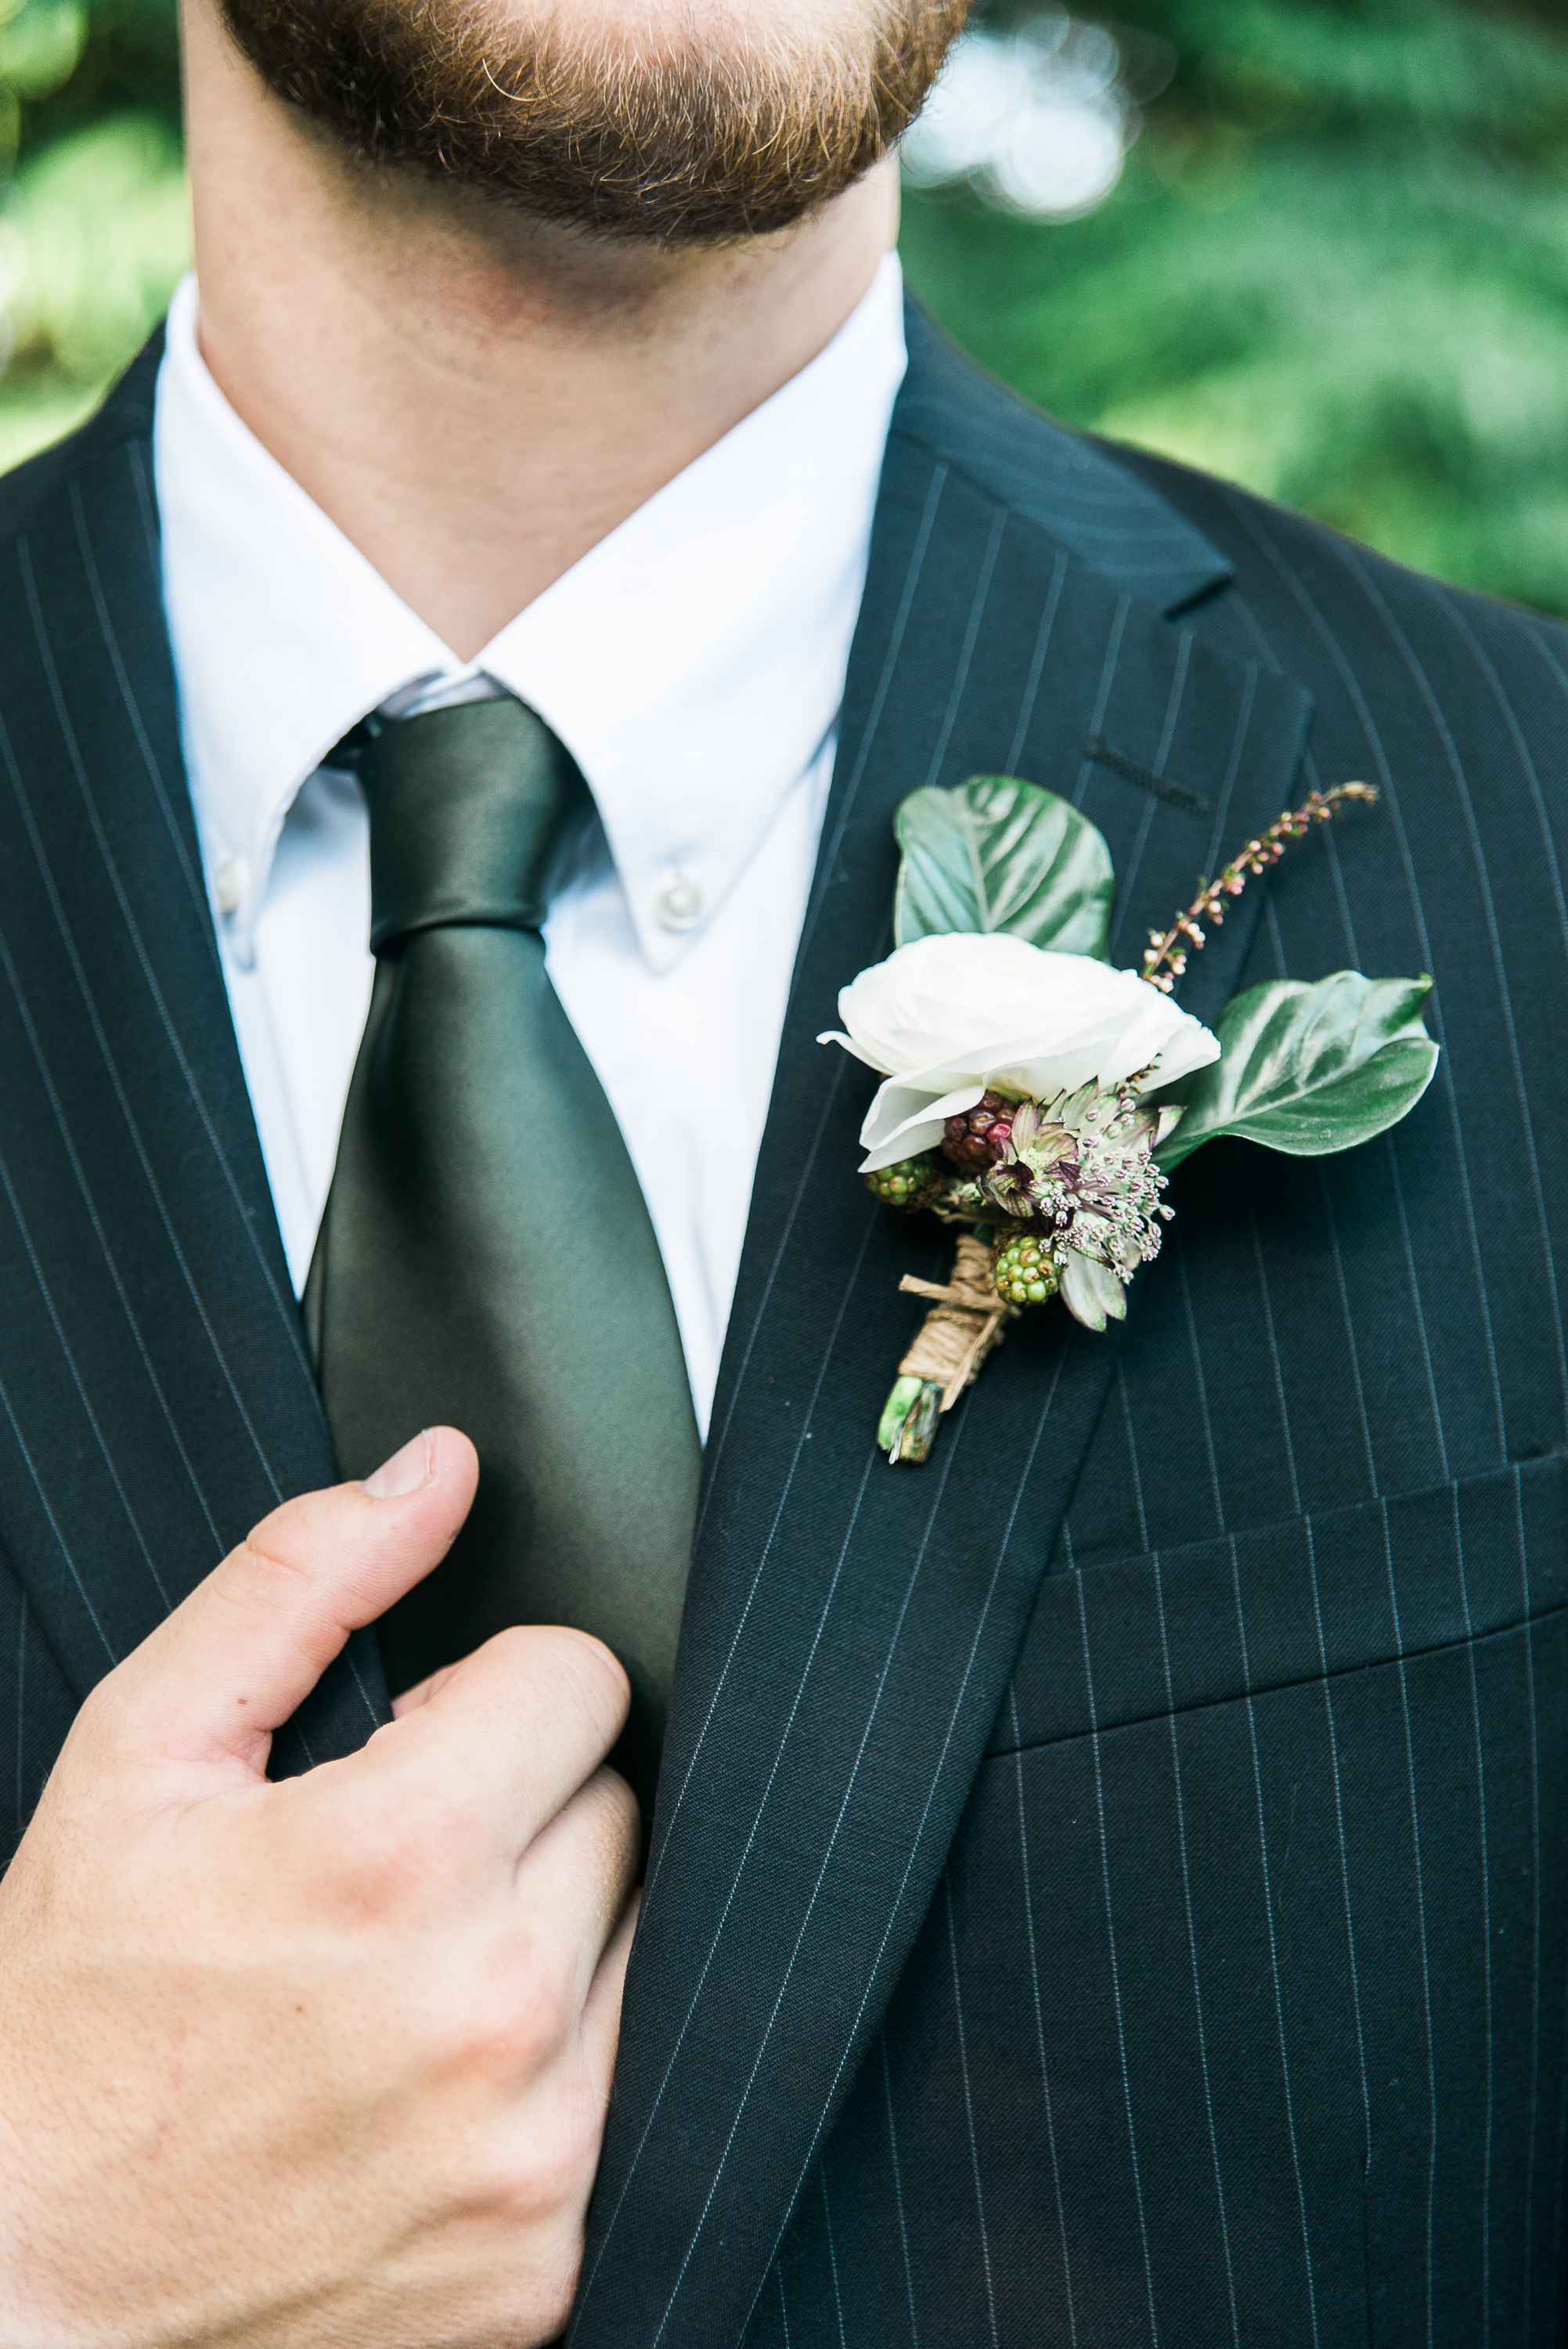 Groom's boutonniere with a dark green silk tie and black suit.